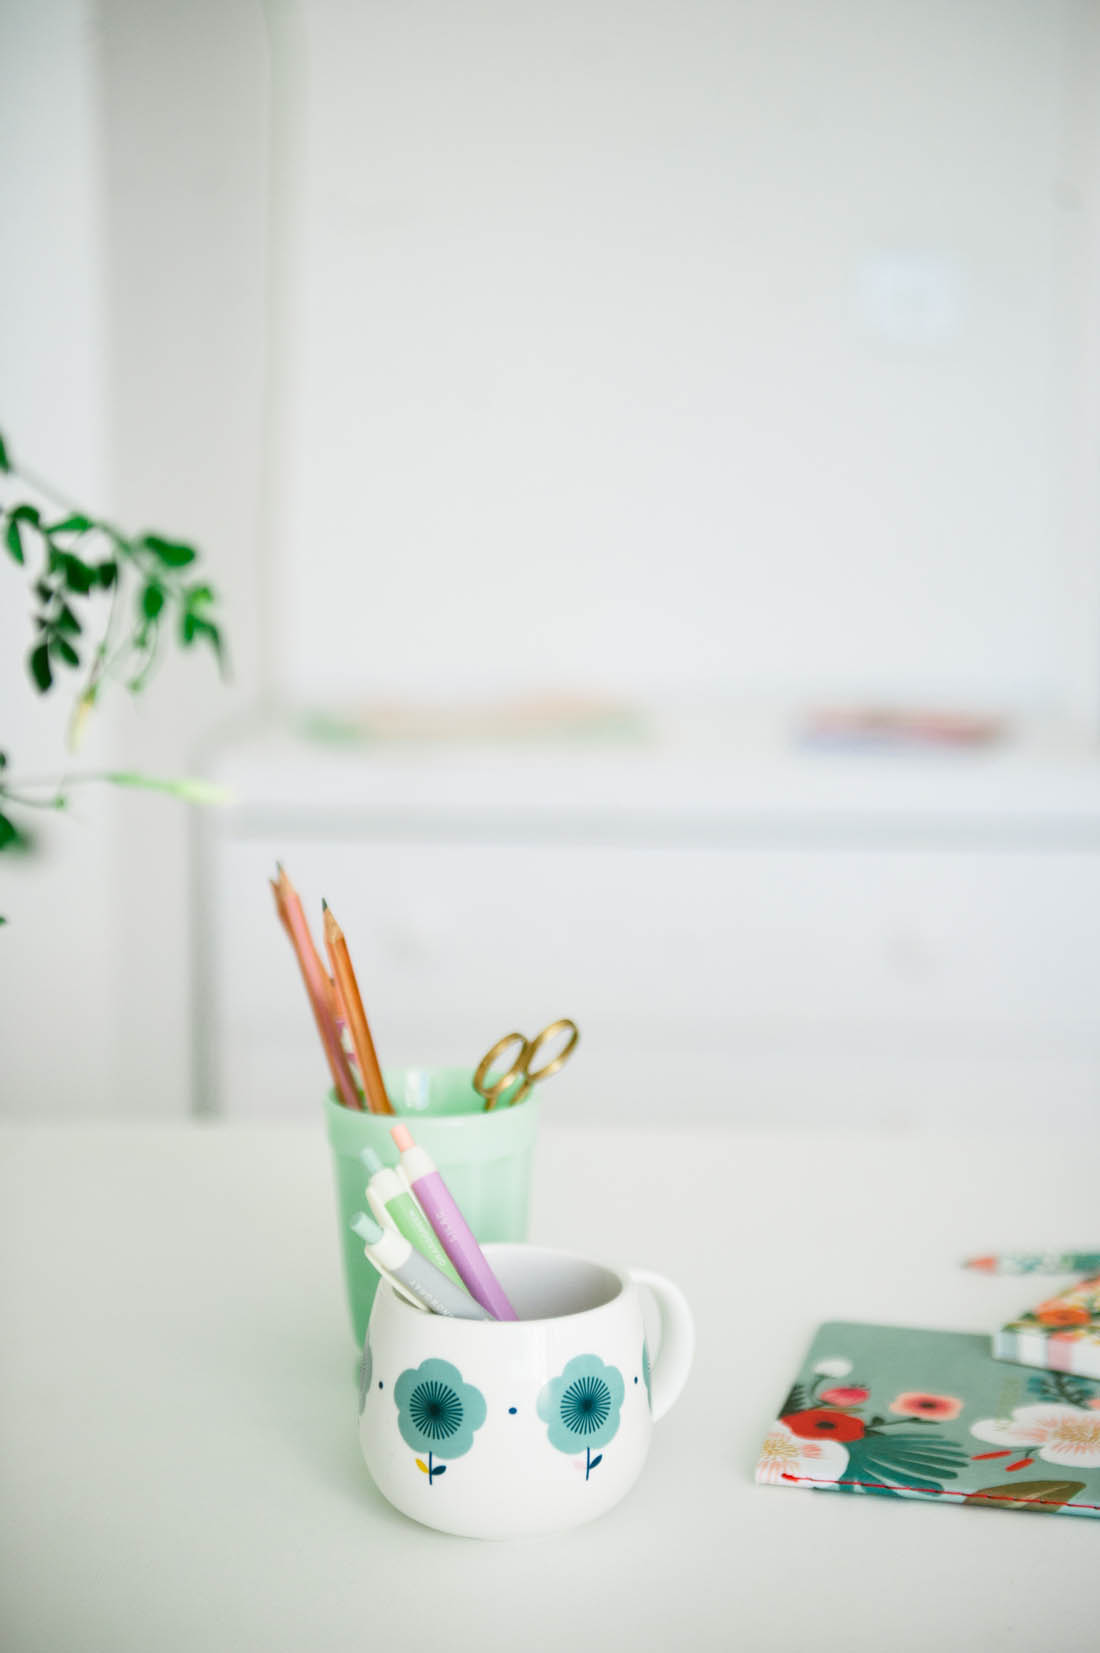 Scandi style work space | DIY home office |Photograph by katharinepeachey.co.uk | Apartment Apothecary